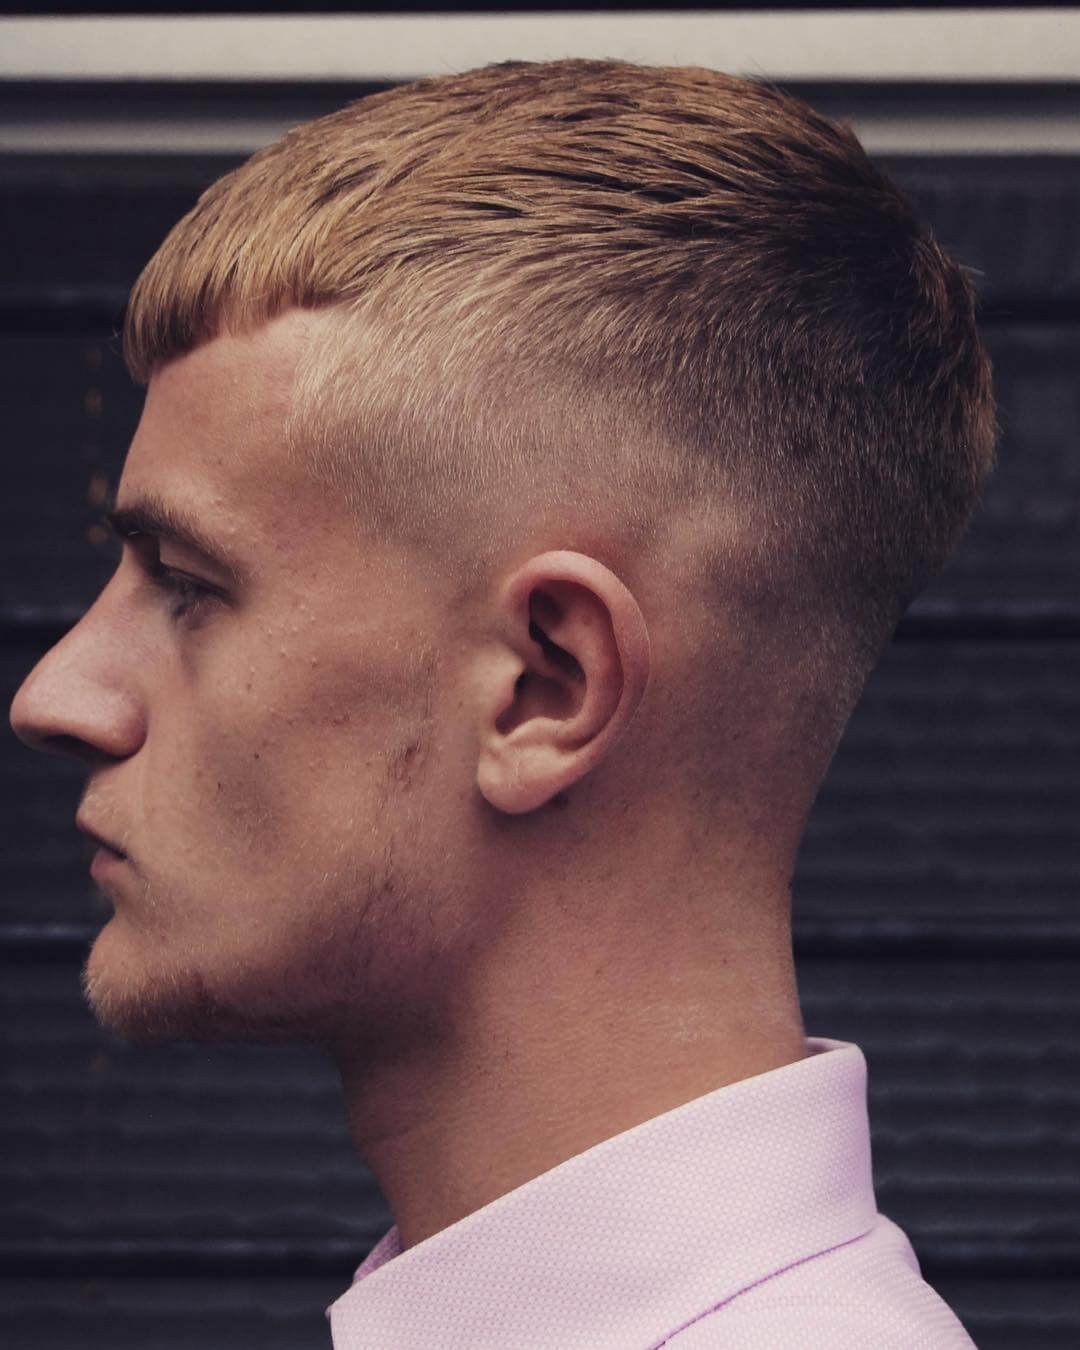 30 Classy Caesar Haircuts For Men Hairdo Hairstyle Mens Hairstyles Short Asian Men Hairstyle Cool Hairstyles For Men